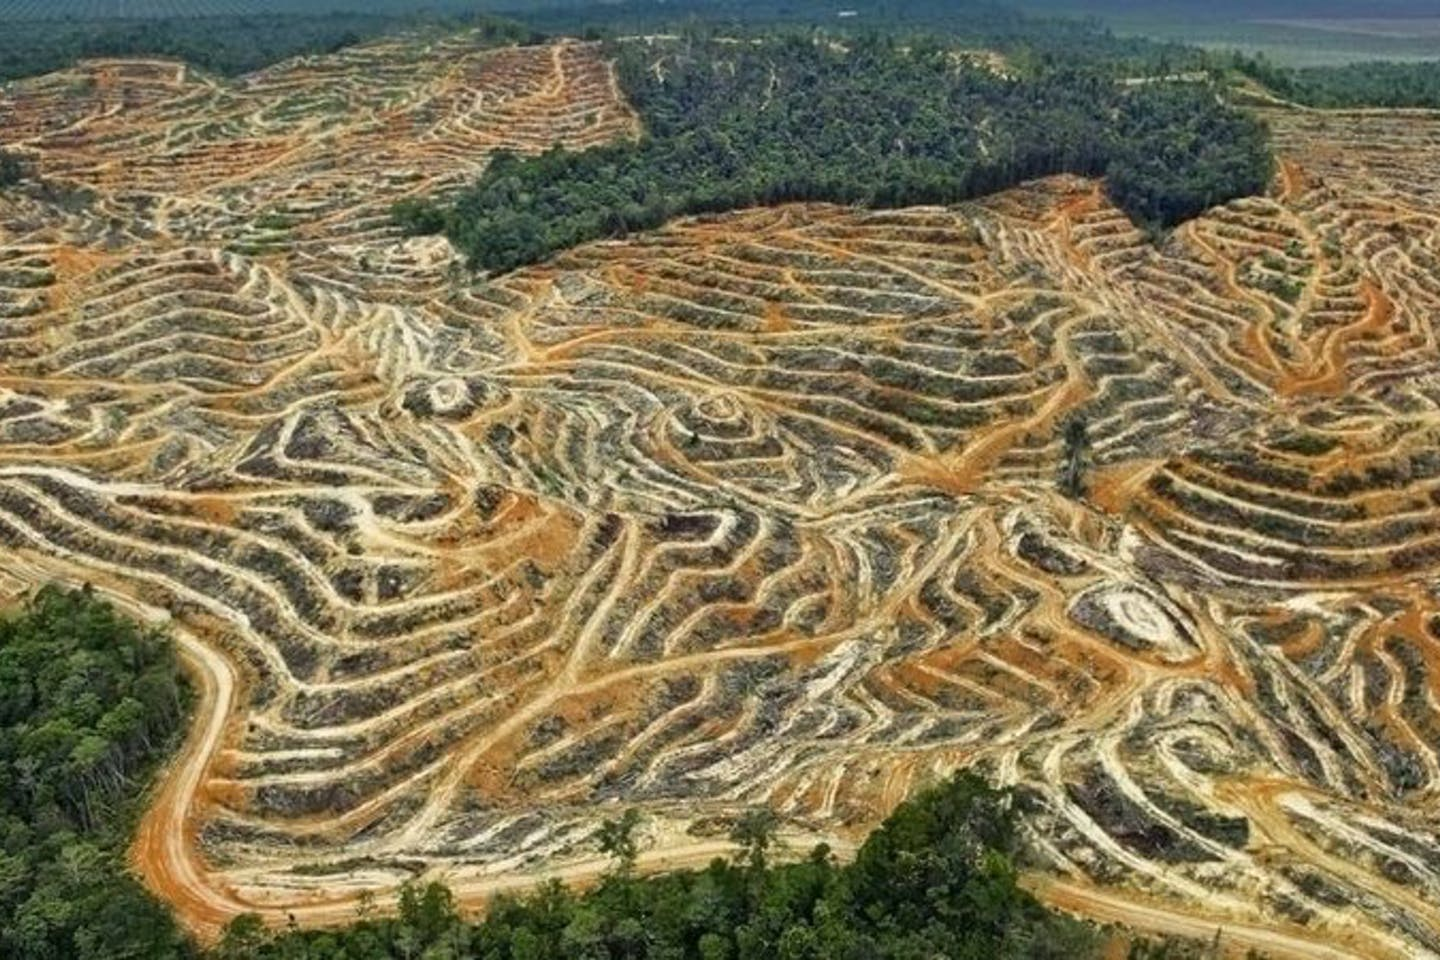 Forests cleared for palm oil cultivation.